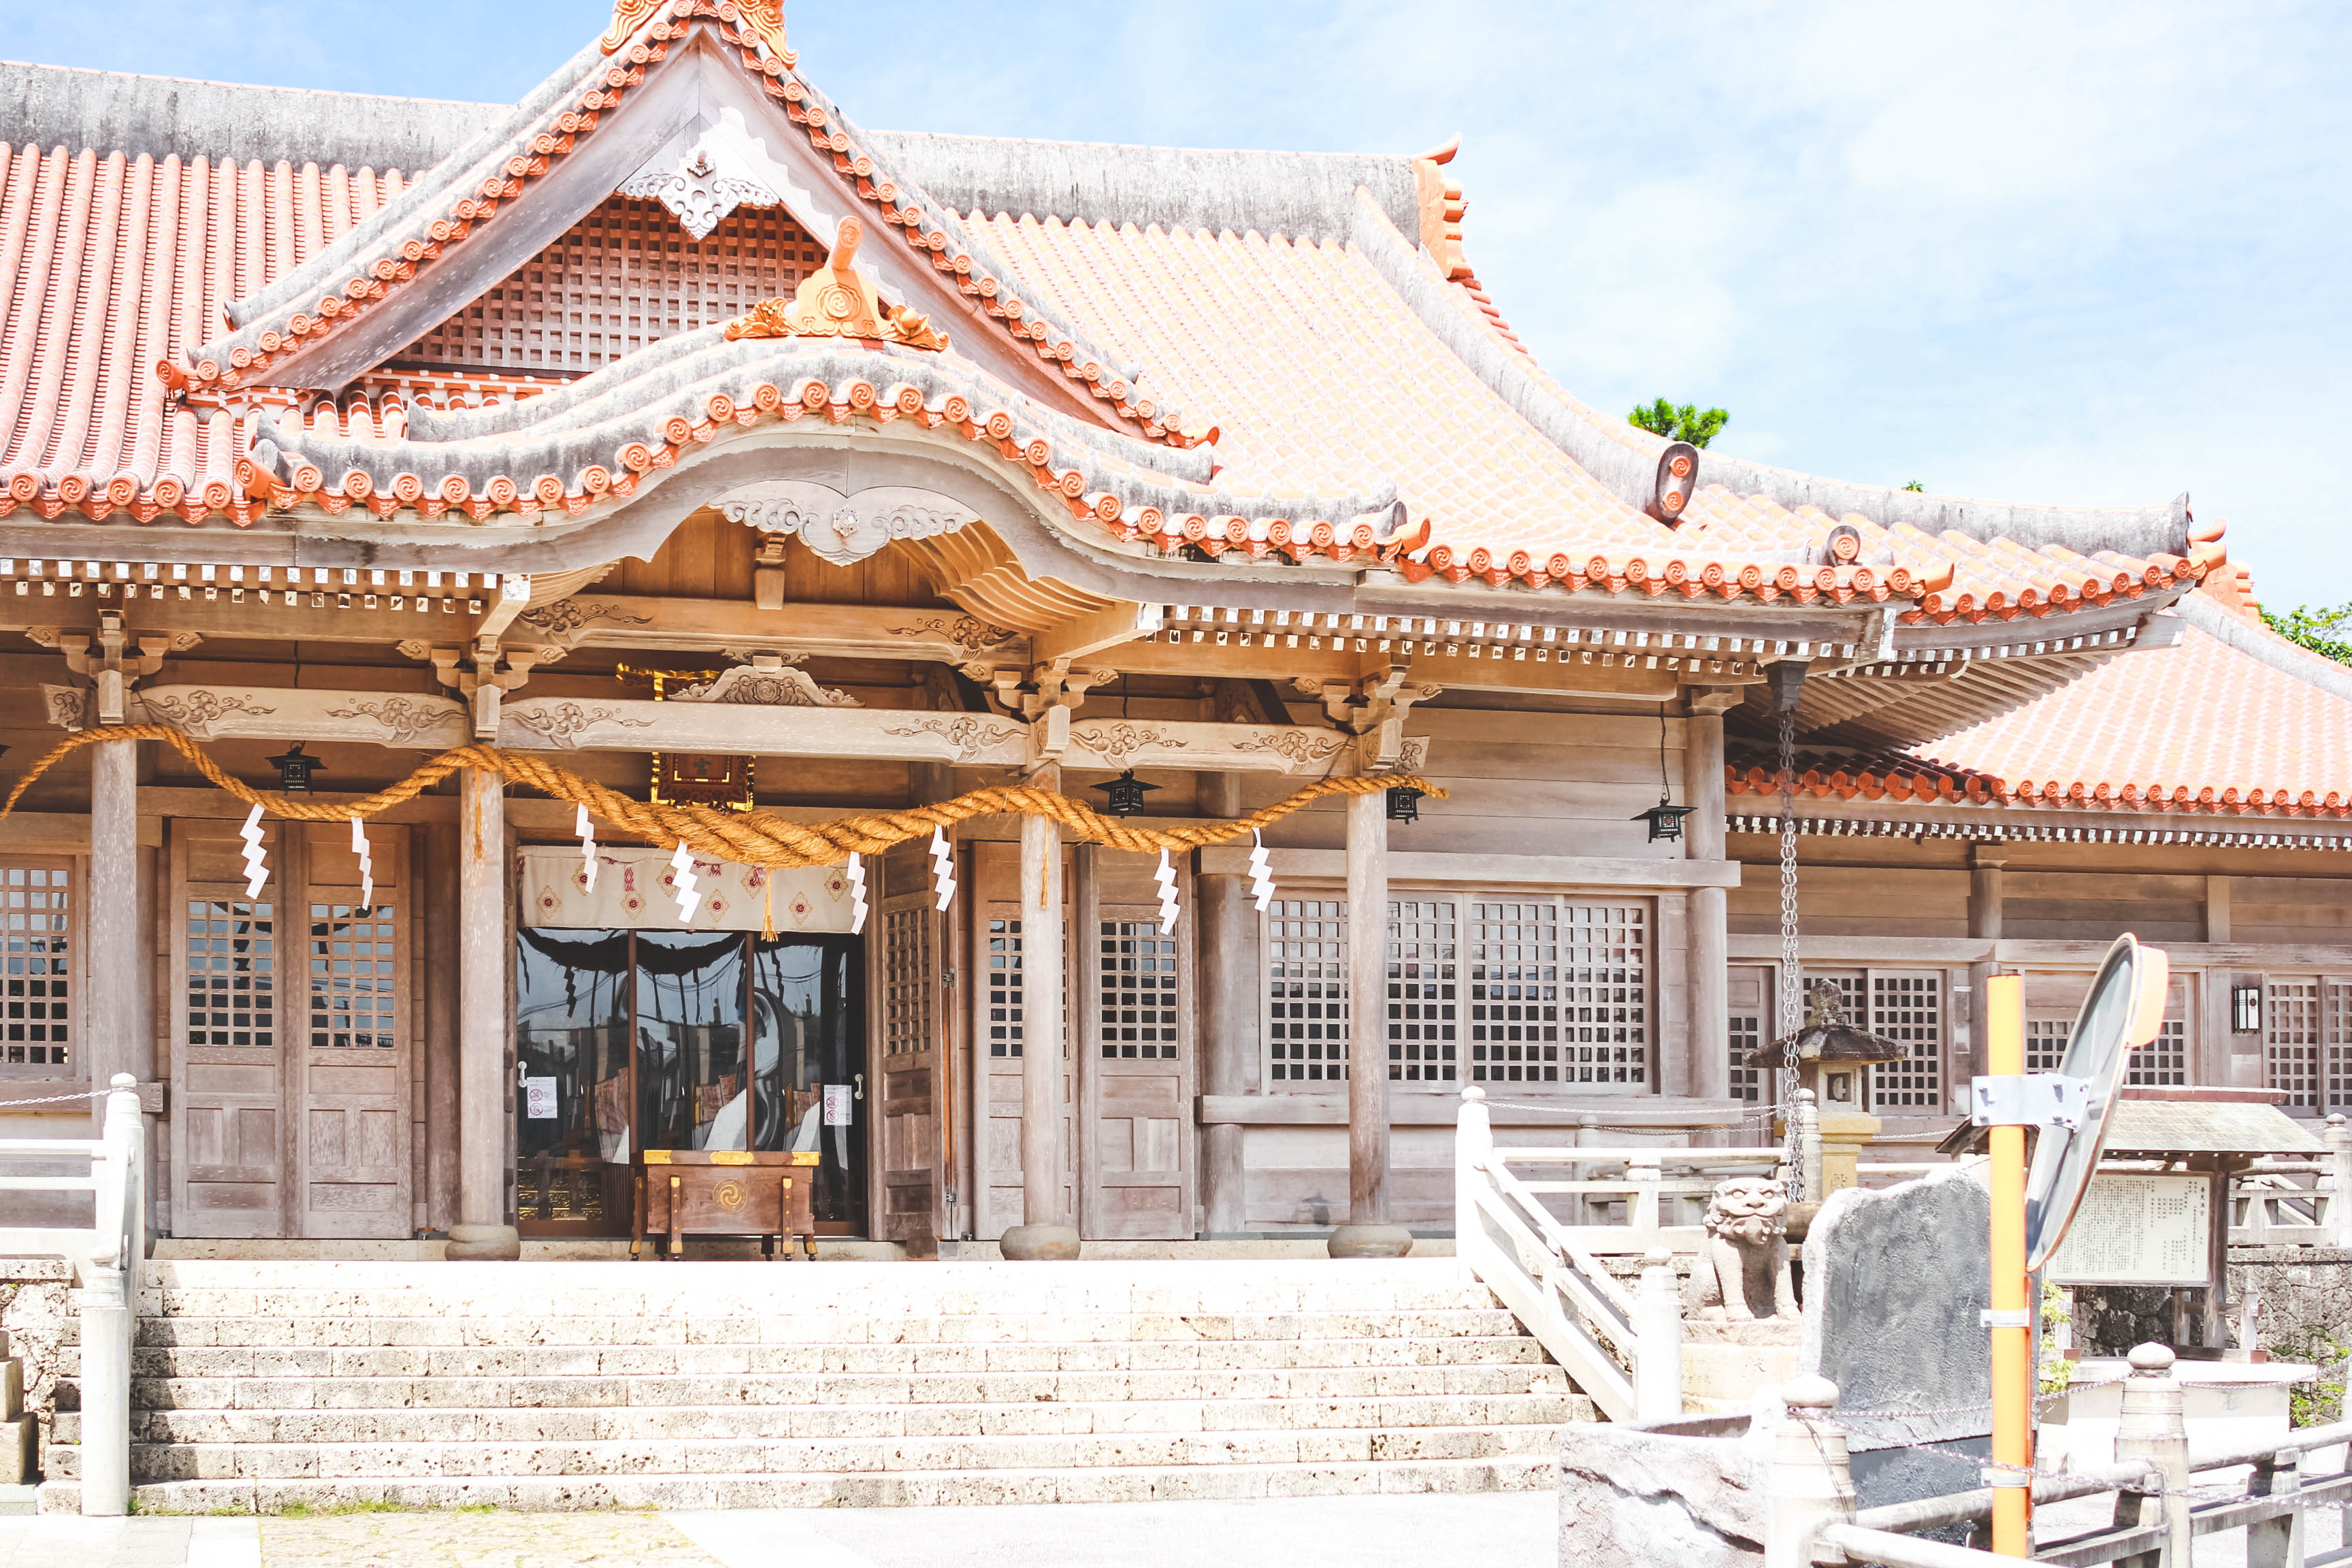 Futenma Shrine and Cave